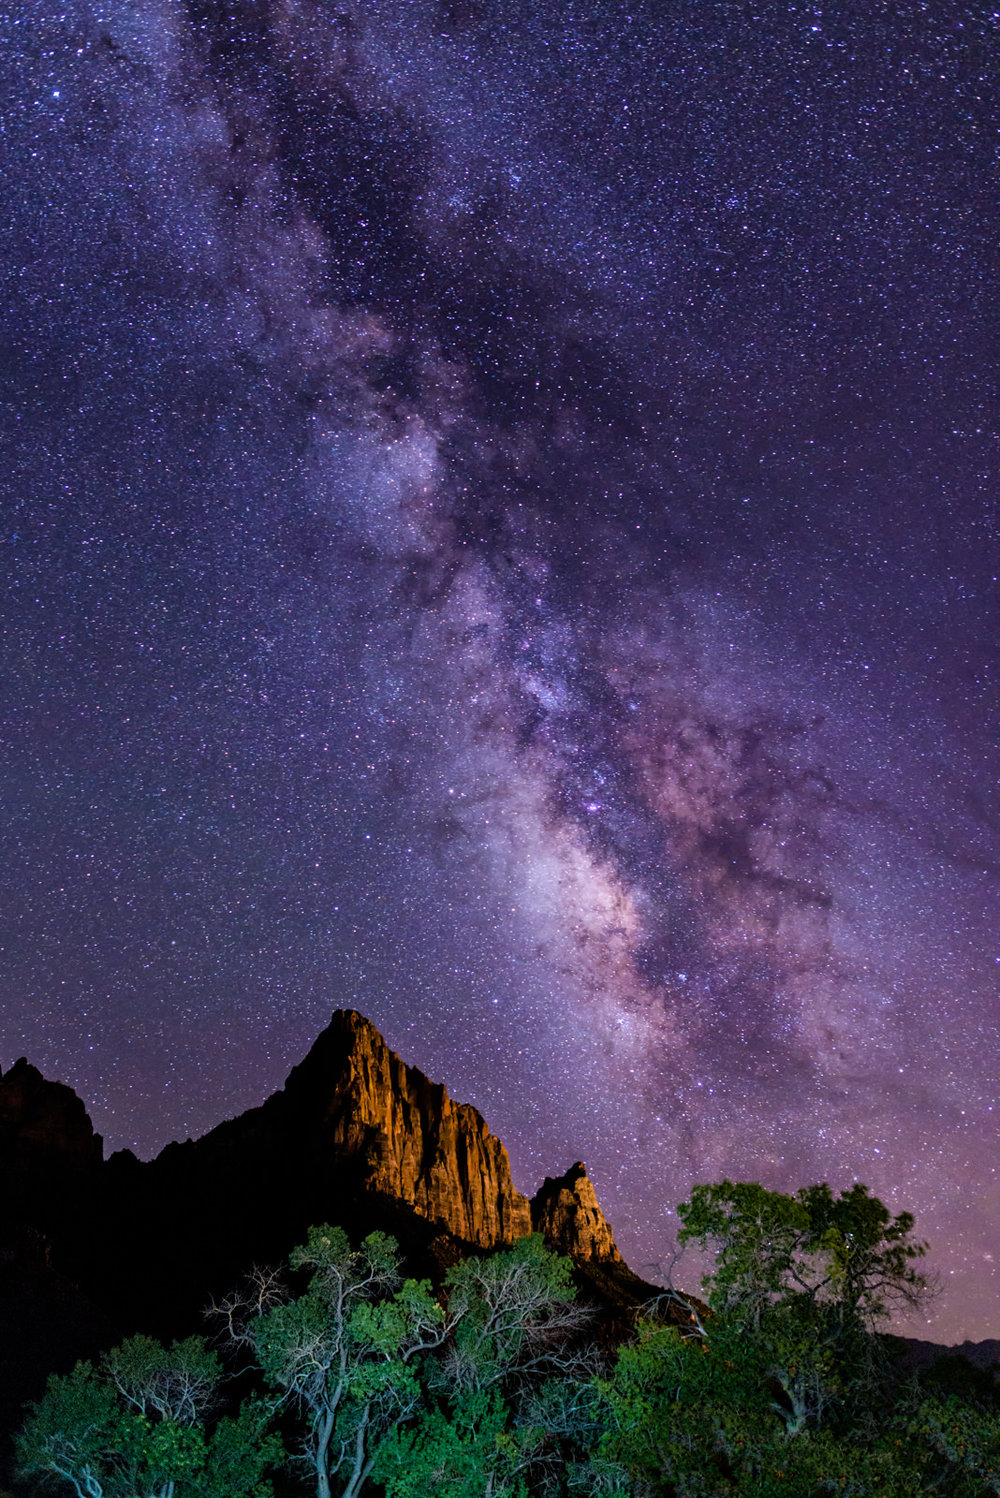 The Milky Way and The Watchman